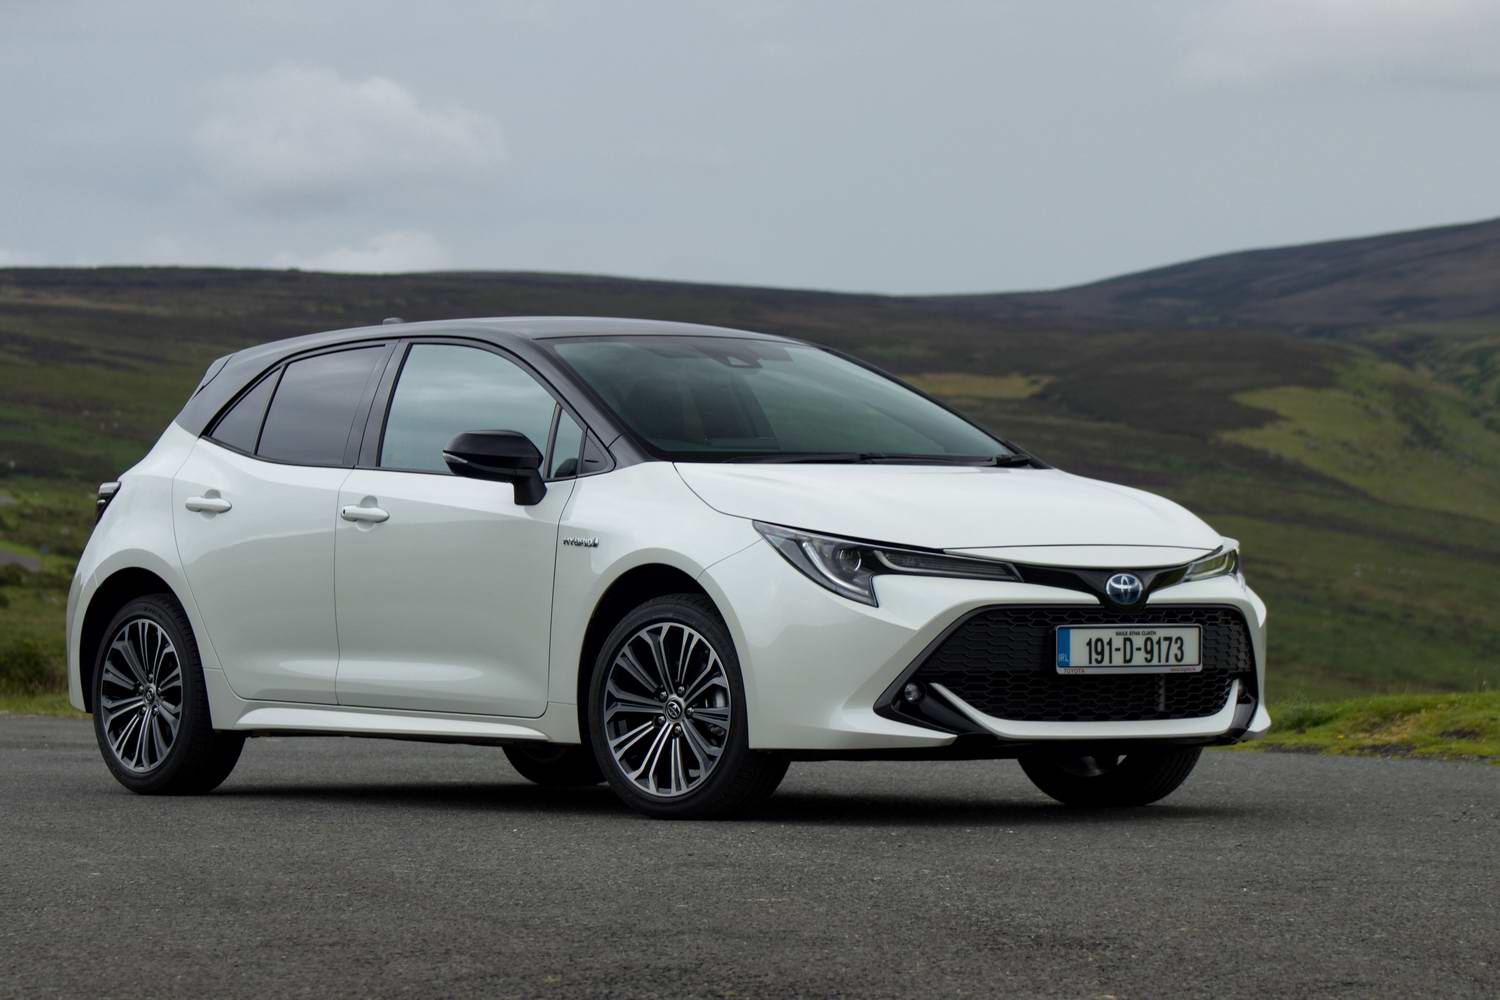 Car Reviews | Toyota Corolla 1.8 Hybrid Hatchback (2019) | CompleteCar.ie